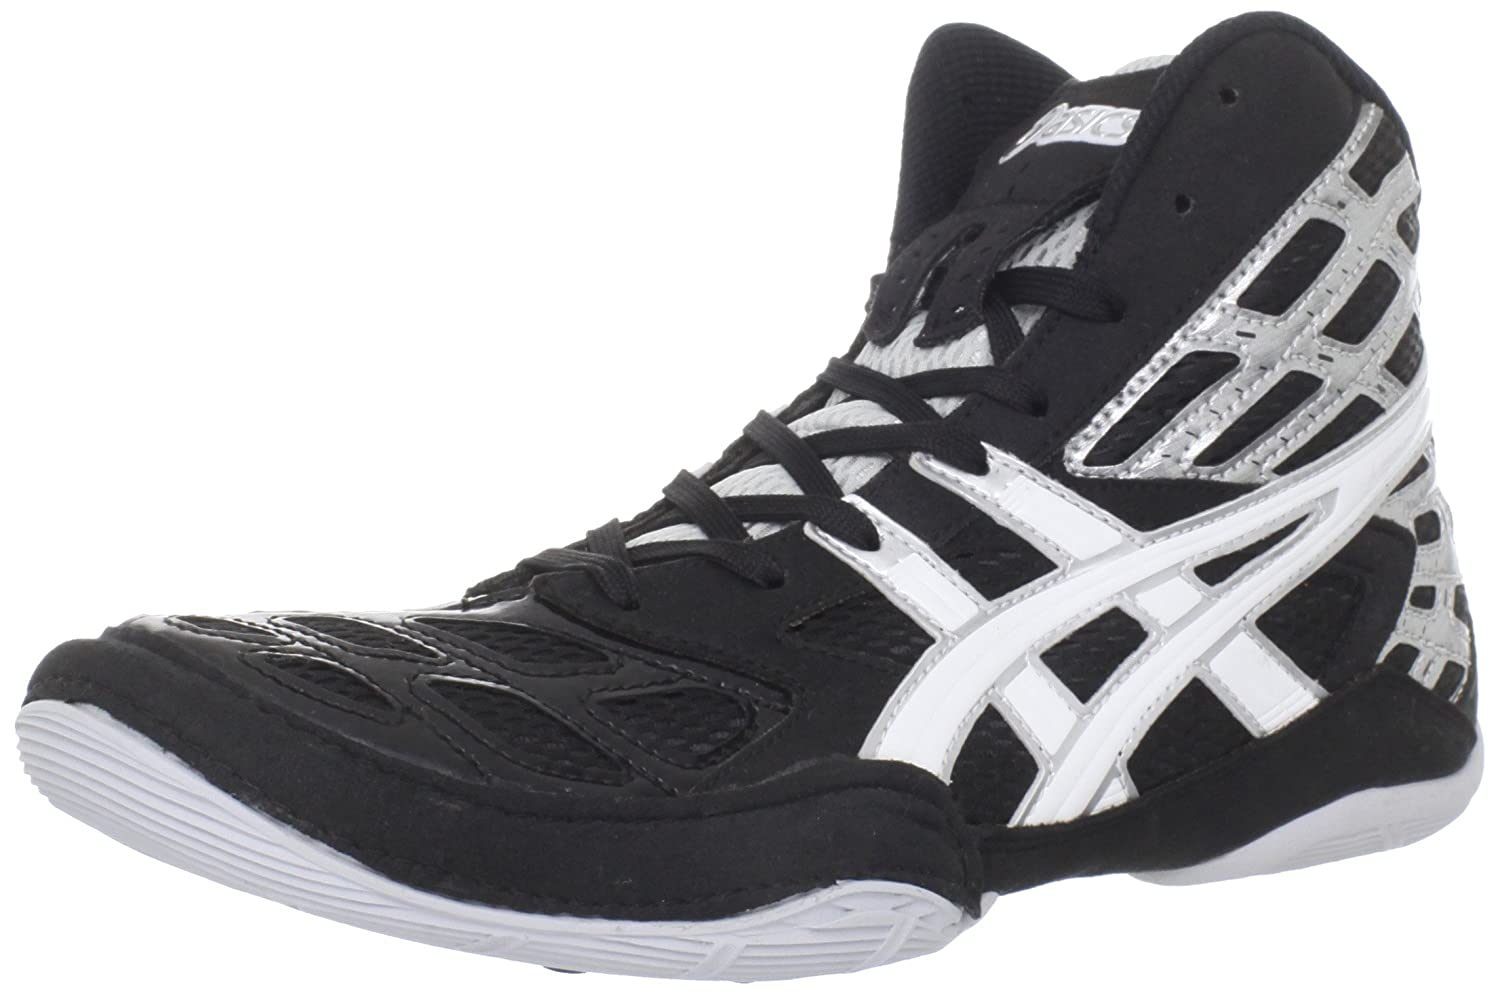 ASICS Men's Split Second 9 Wrestling Shoe SPLIT SECOND 9-M